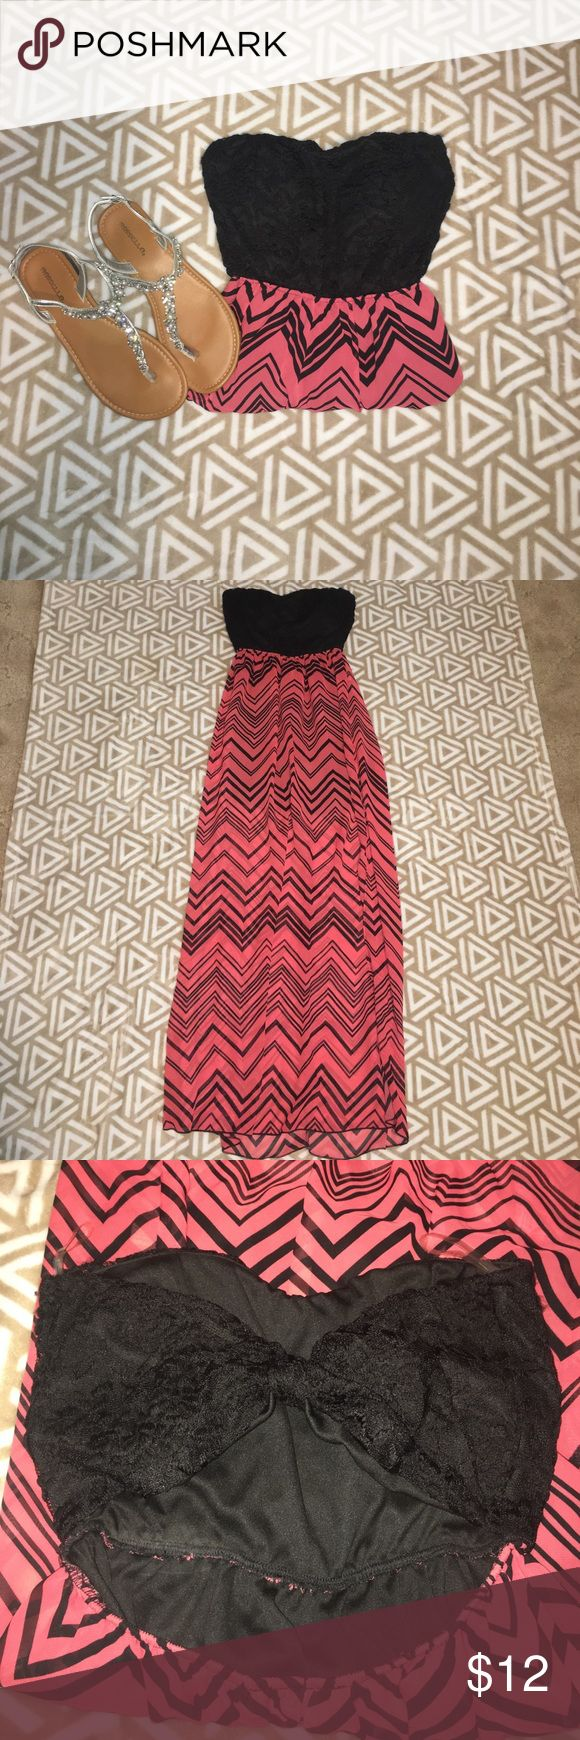 Chevron maxi dress Super cute pink and black chevron maxi dress. Light weight material with the attached slip. Back has a cute knot cut out! Body Central Dresses Maxi